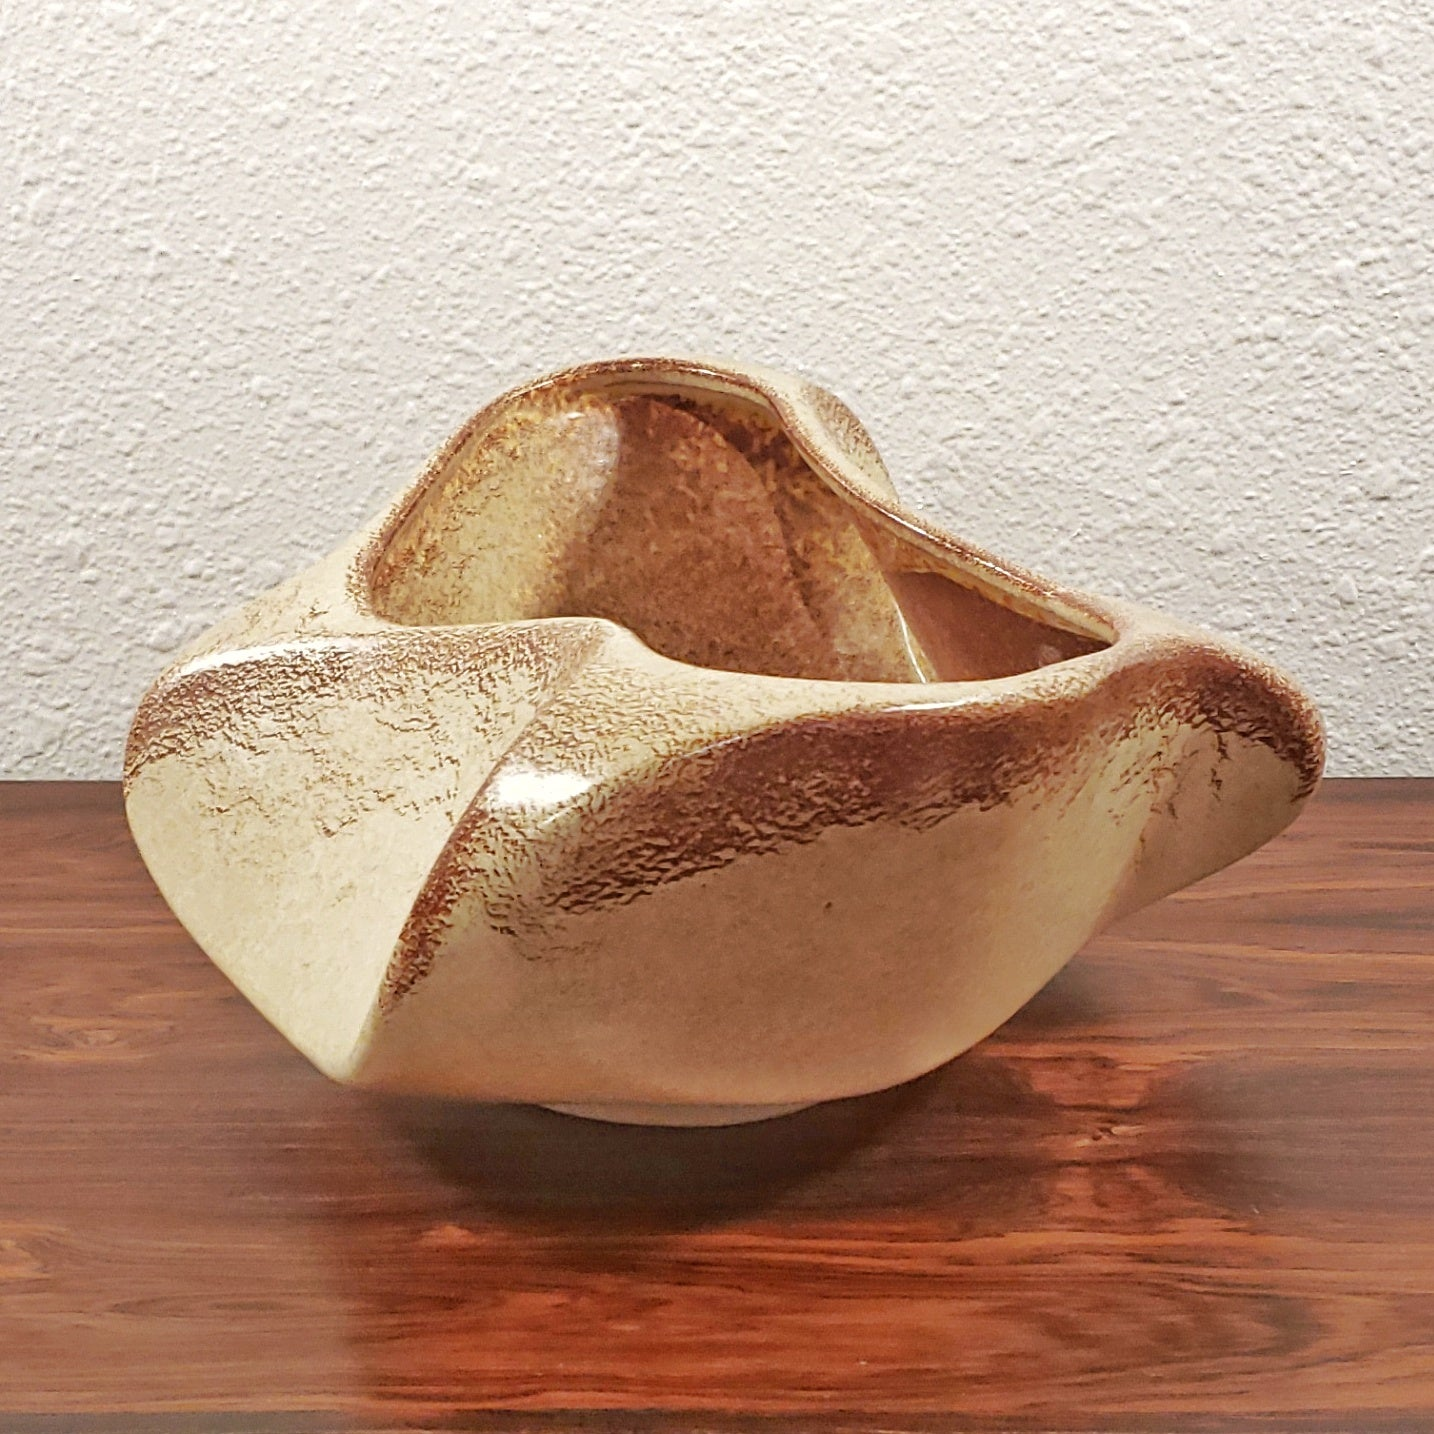 BERTONCELLO 'SCREZIATO HAVANA' CENTERPIECE BOWL